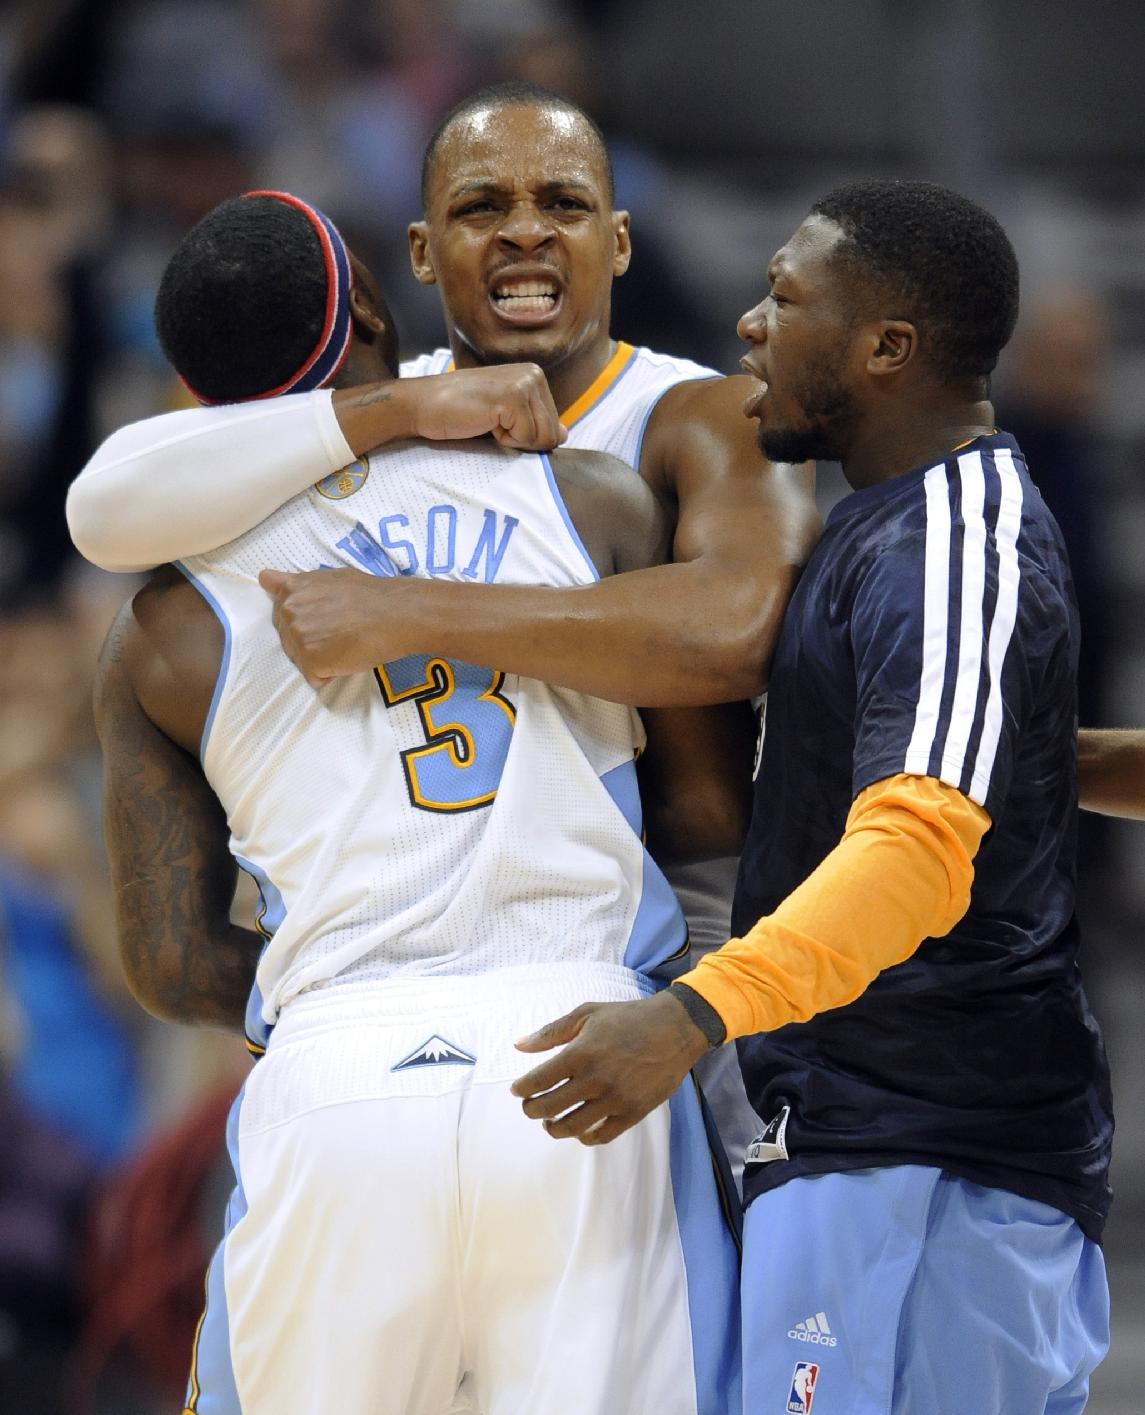 Denver Nuggets guard Ty Lawson (3) is congratulated by teammates Randy Foye and Nate Robinson, right, after hitting a 3-point basket against the Atlanta Hawks during the fourth quarter of an NBA basketball game Thursday, Nov. 7, 2013, in Denver. Denver won 109-107